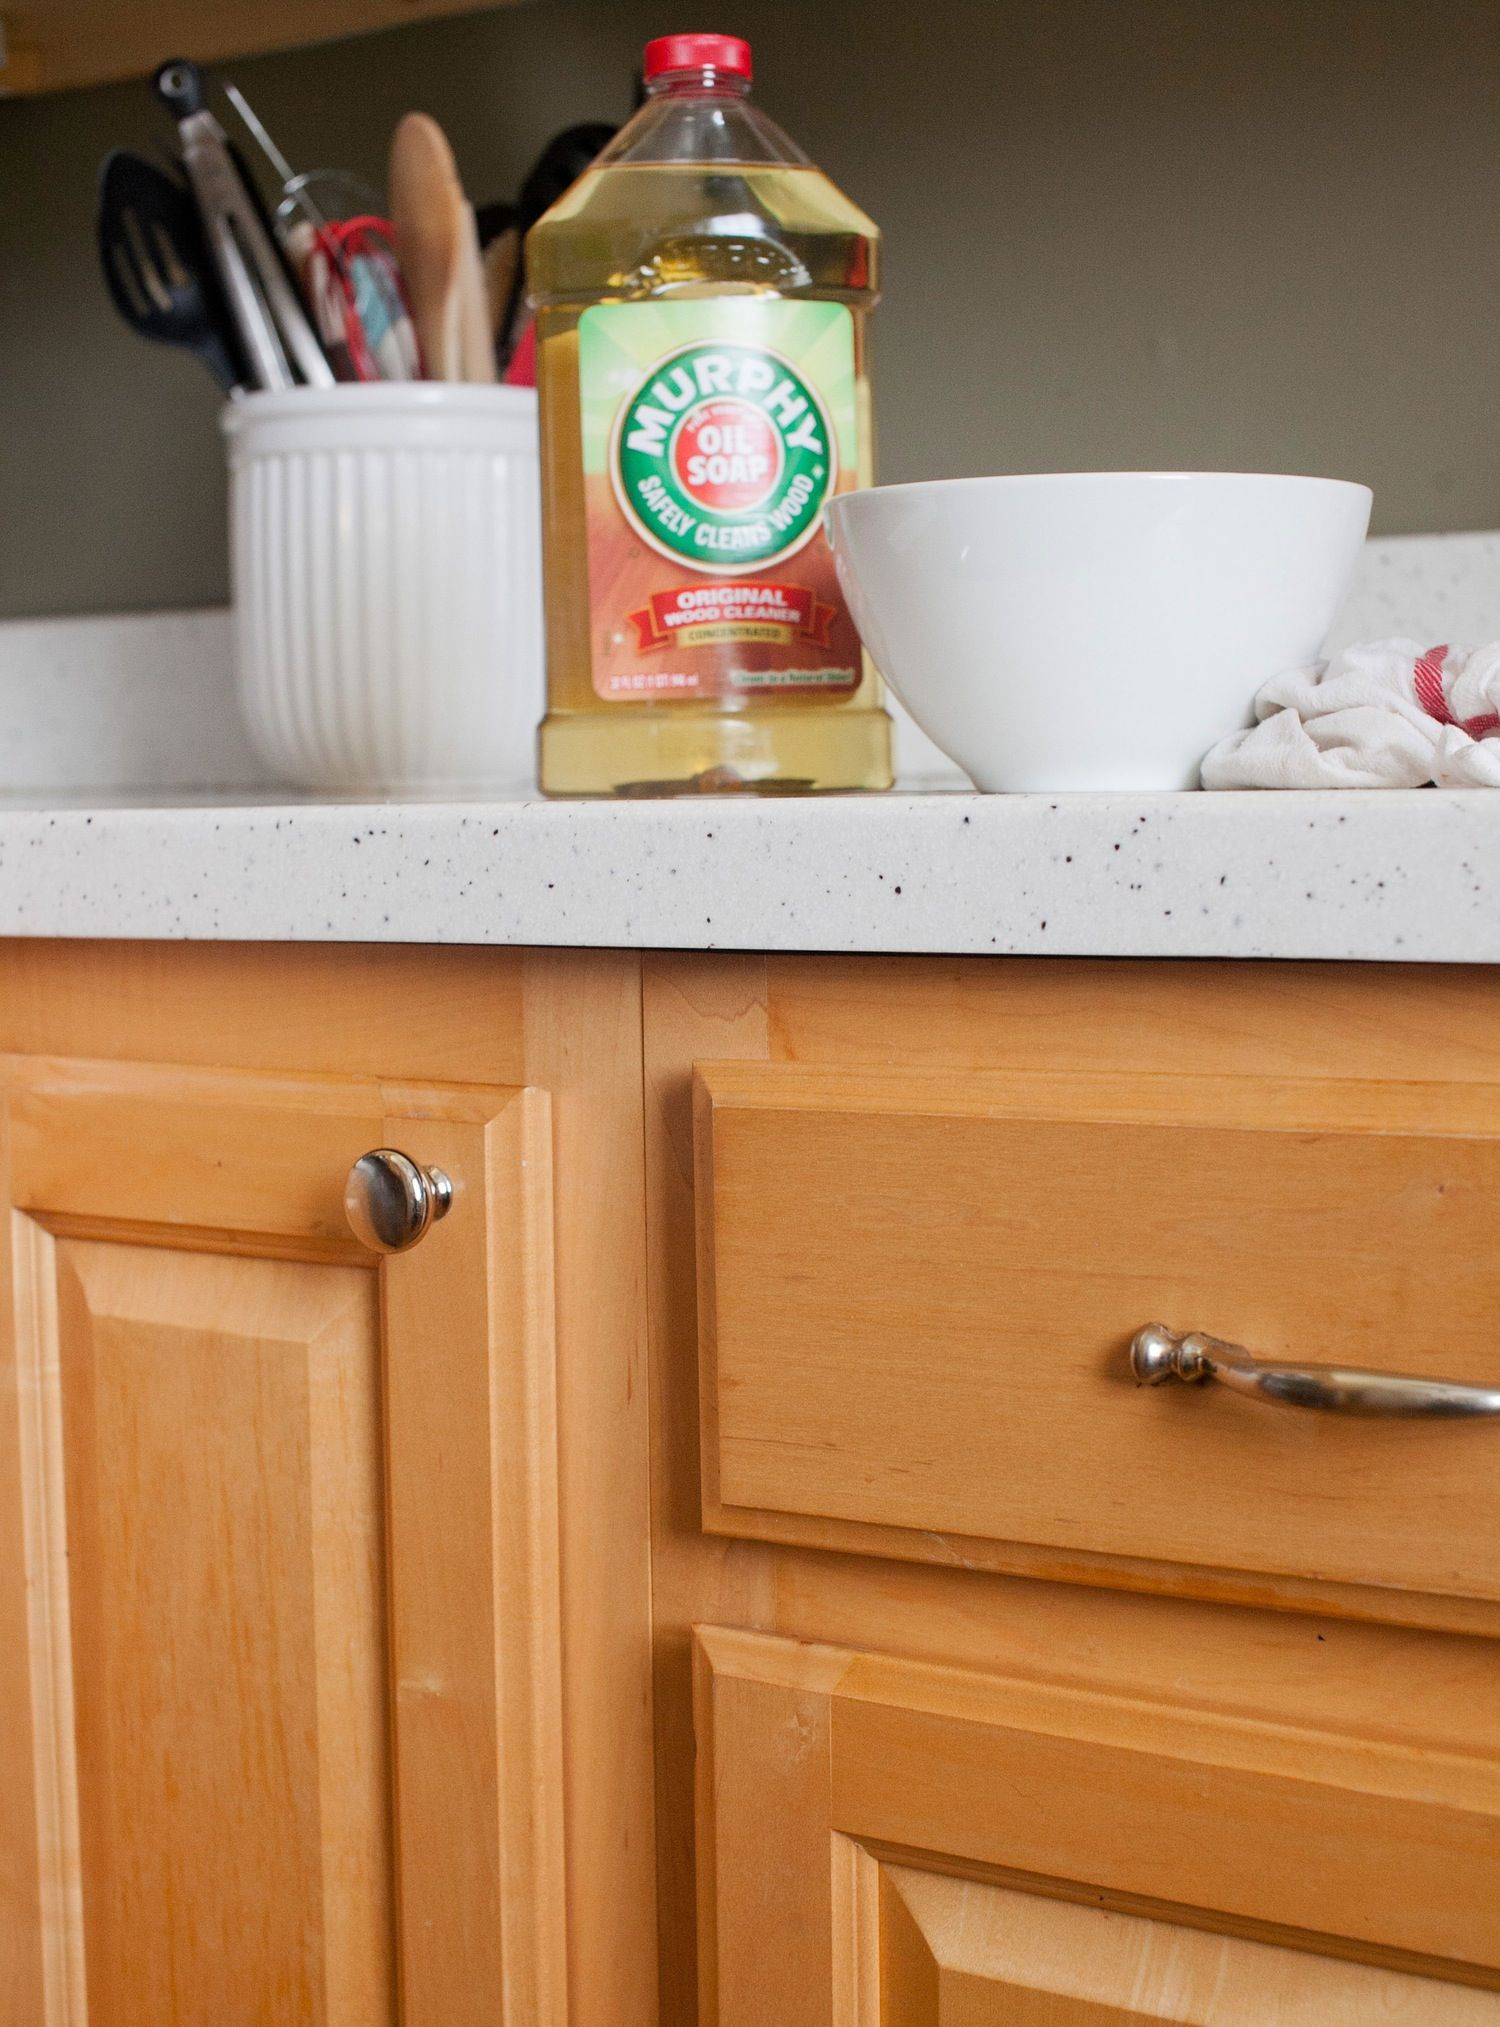 How To Clean Wood Kitchen Cabinets And The Best Cleaner For The Job Cleaning Wood Wooden Kitchen Cabinets Clean Kitchen Cabinets